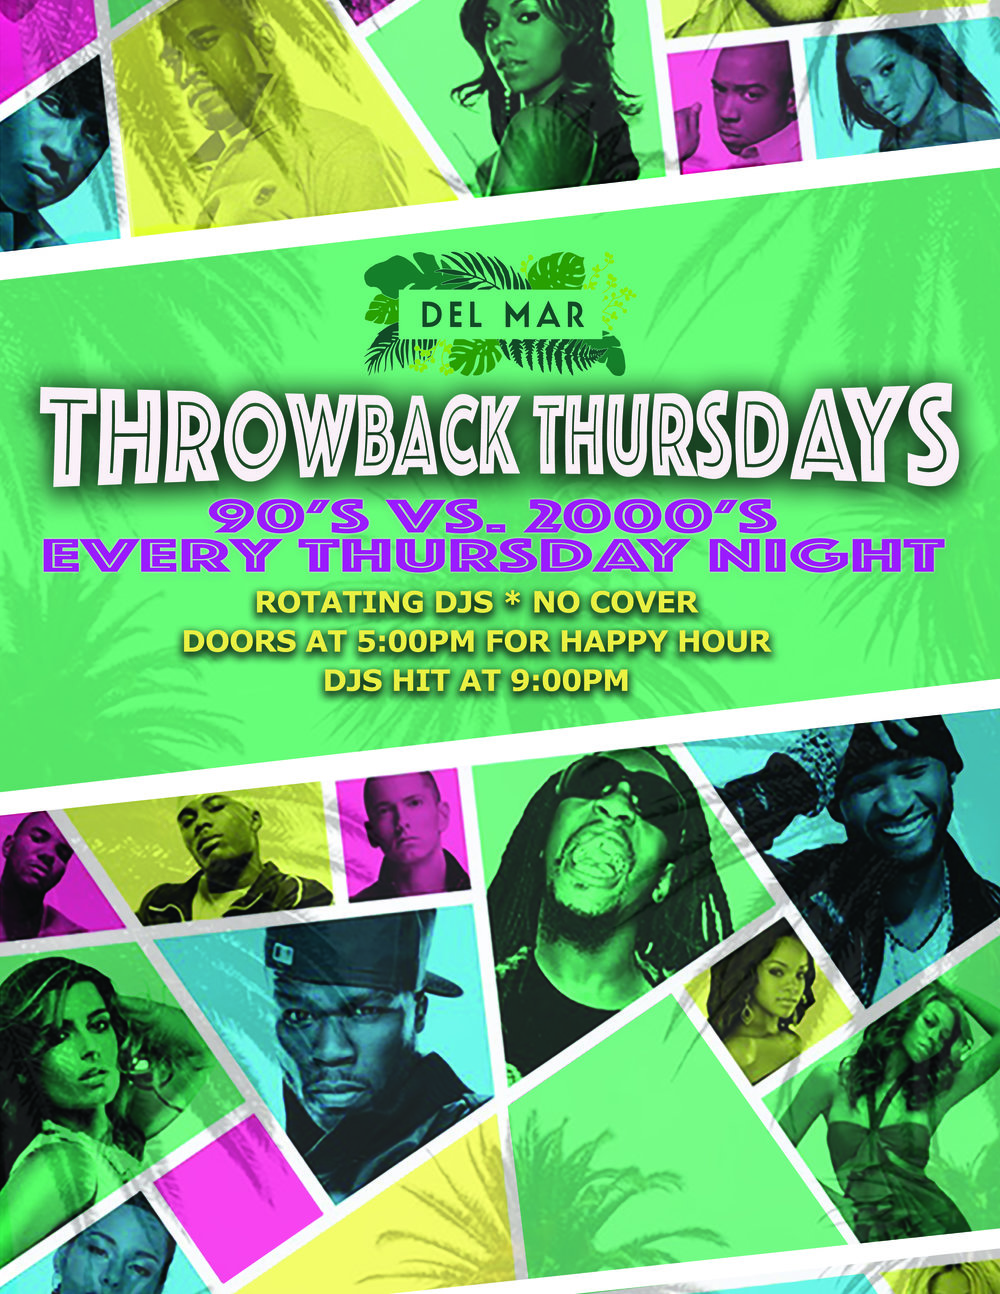 throwback thursdays 8.5x11 print copy.jpg